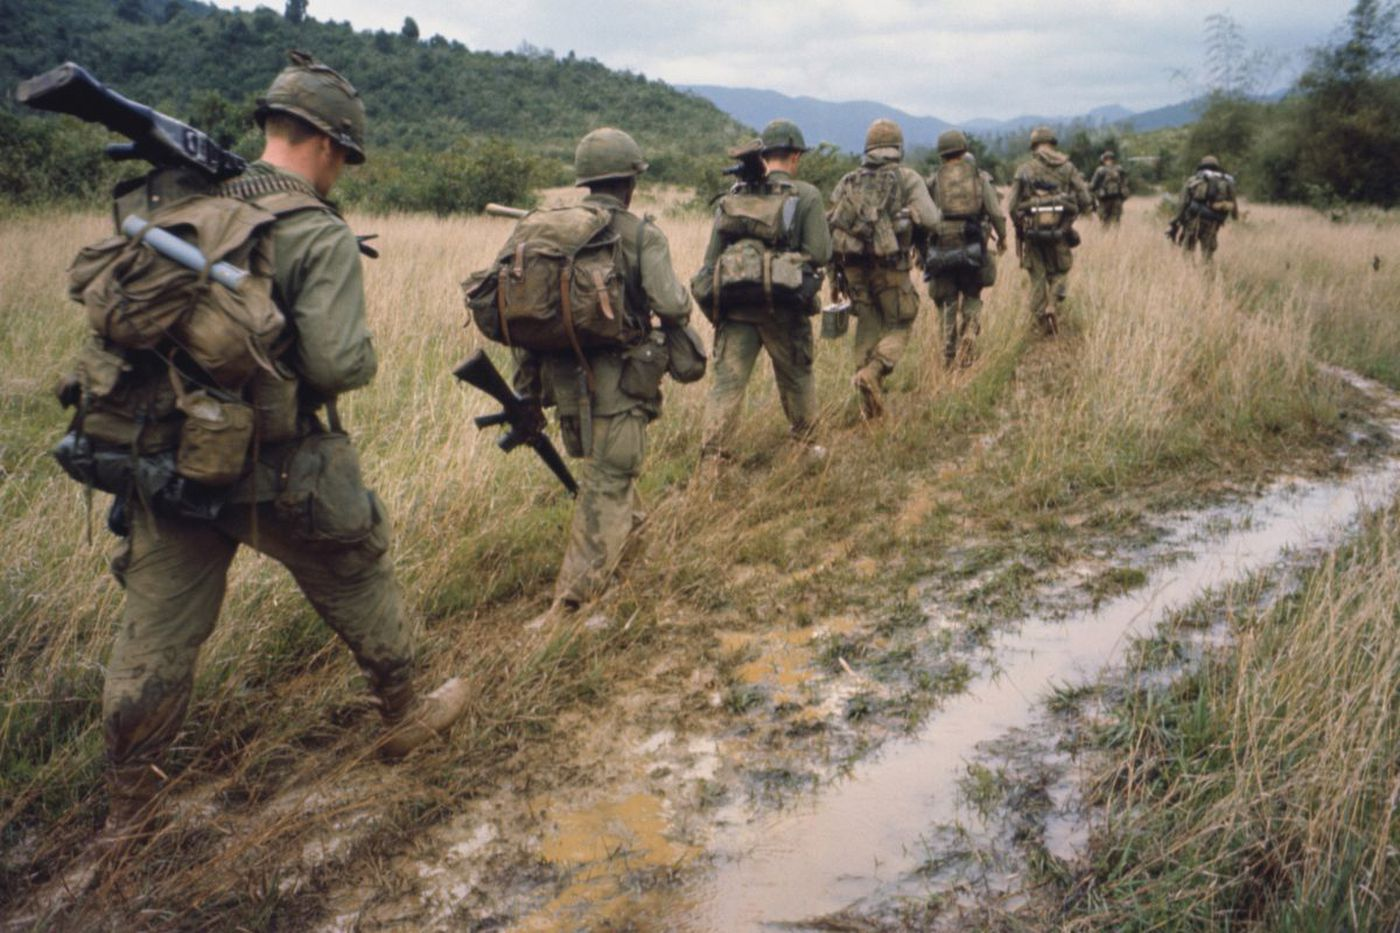 The U.S. learned some lessons from the Vietnam War. The wrong ones